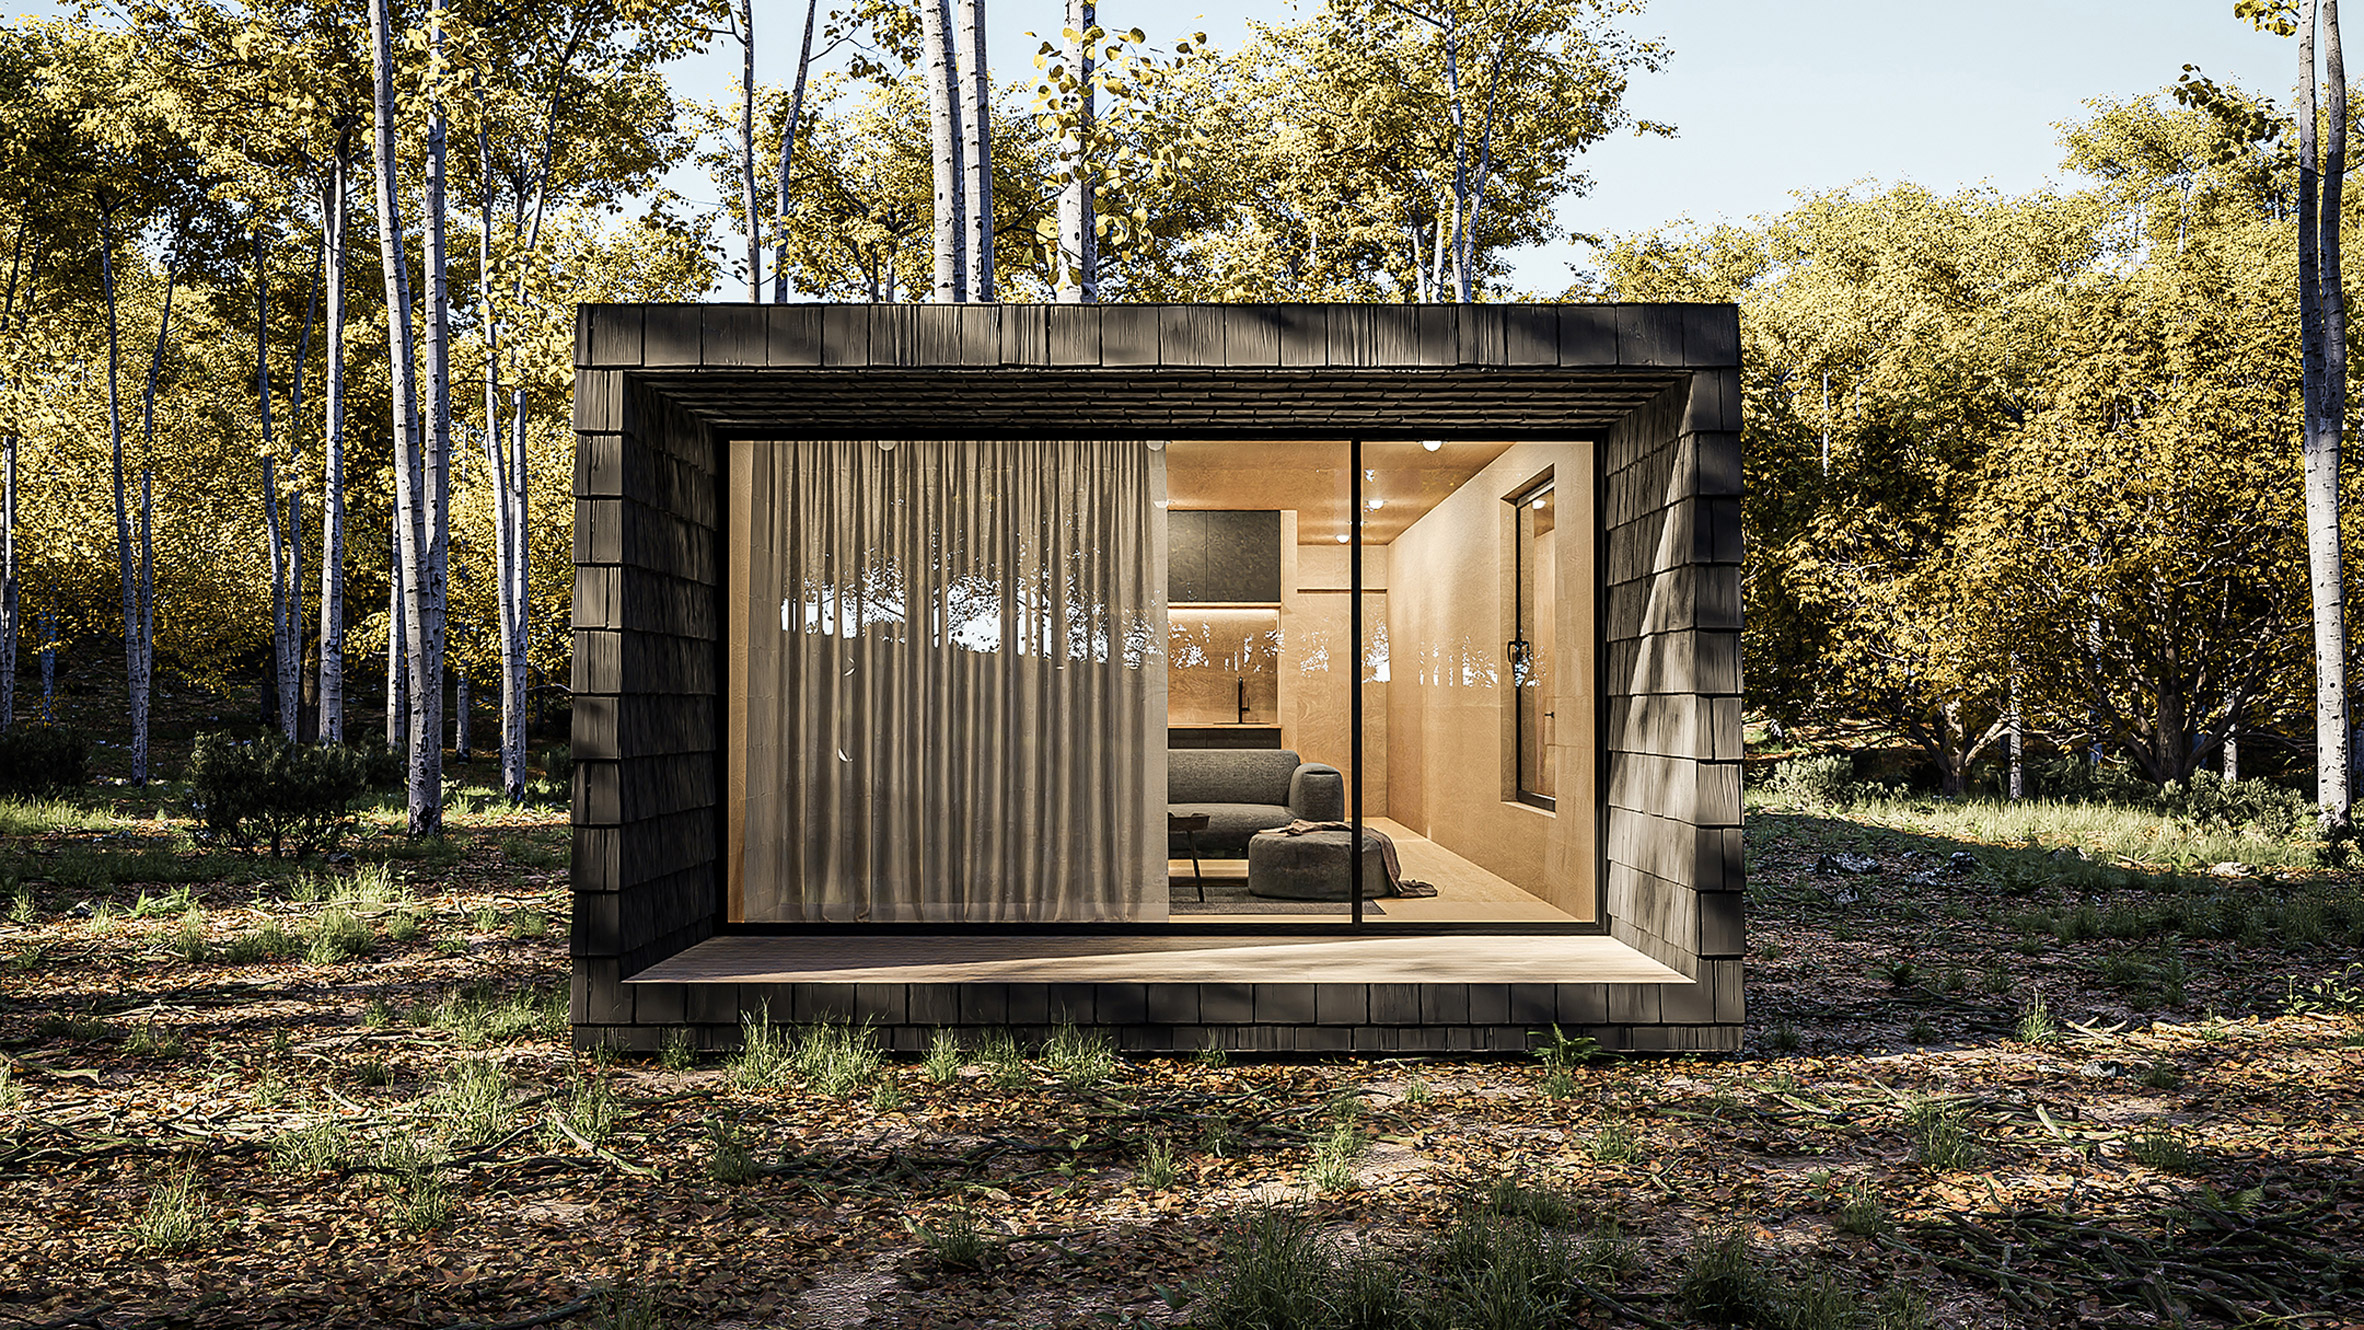 The cabins are clad in local wood